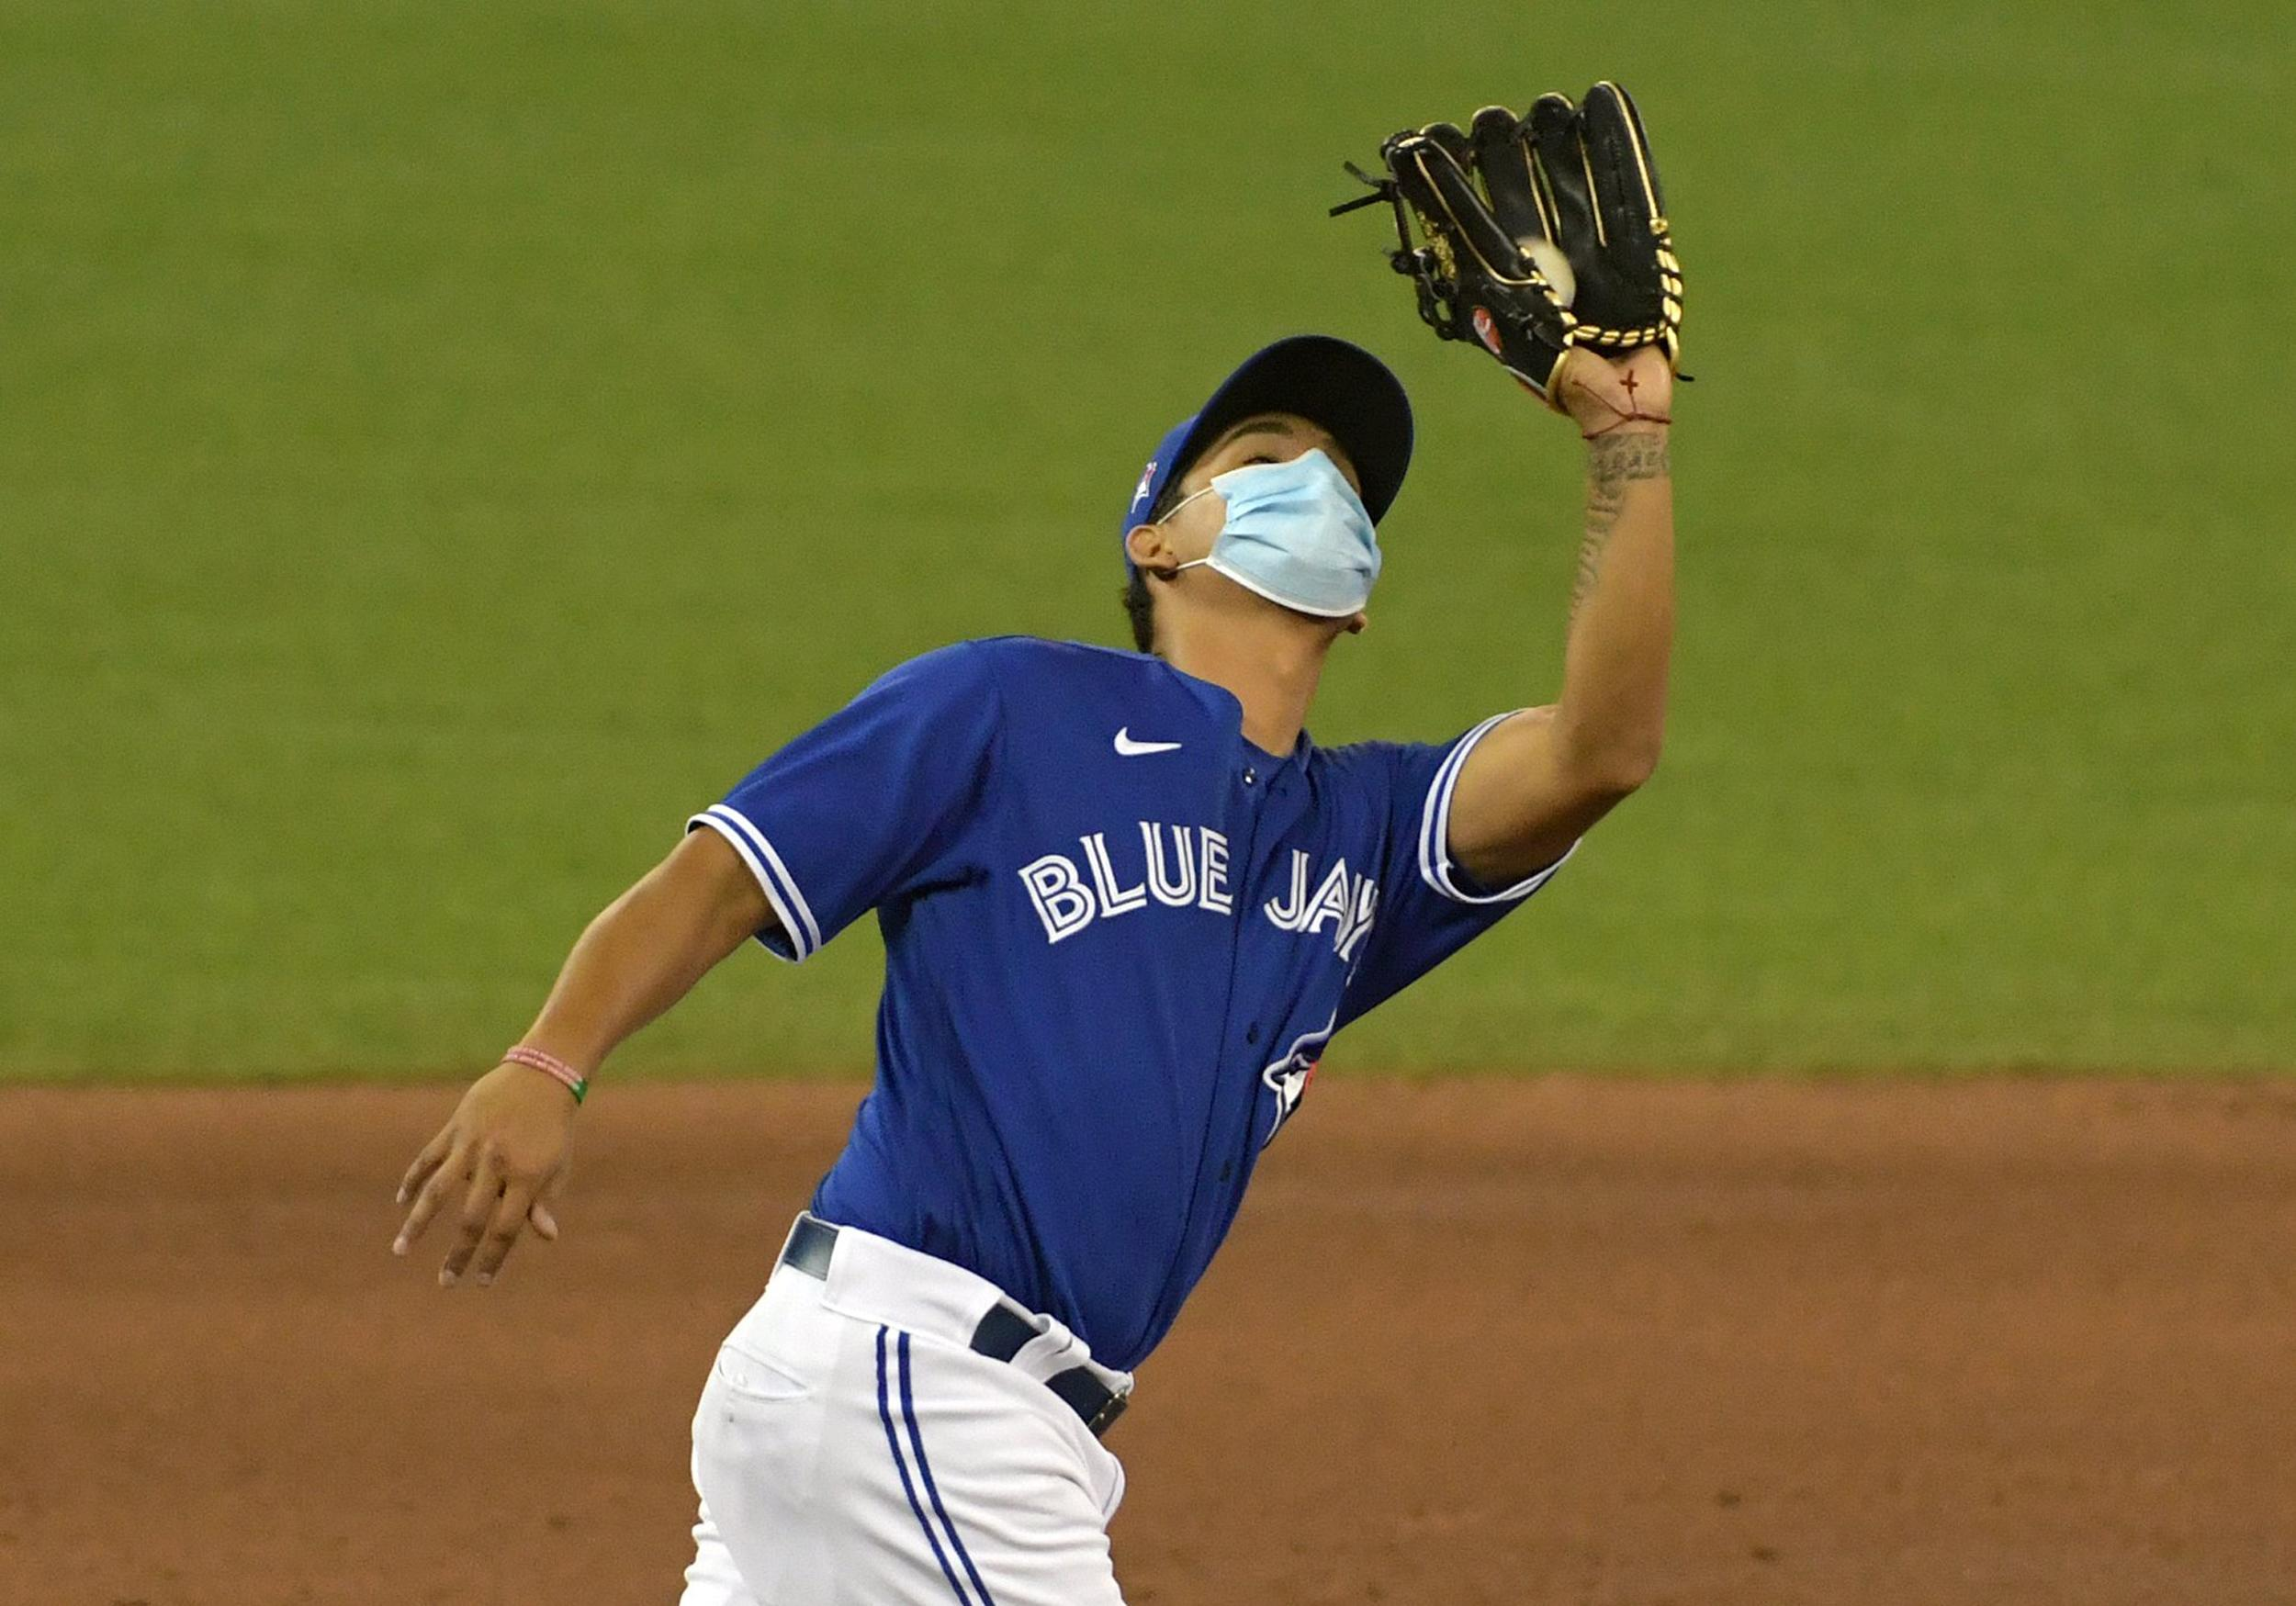 Blue Jays can't play at home, Canada says